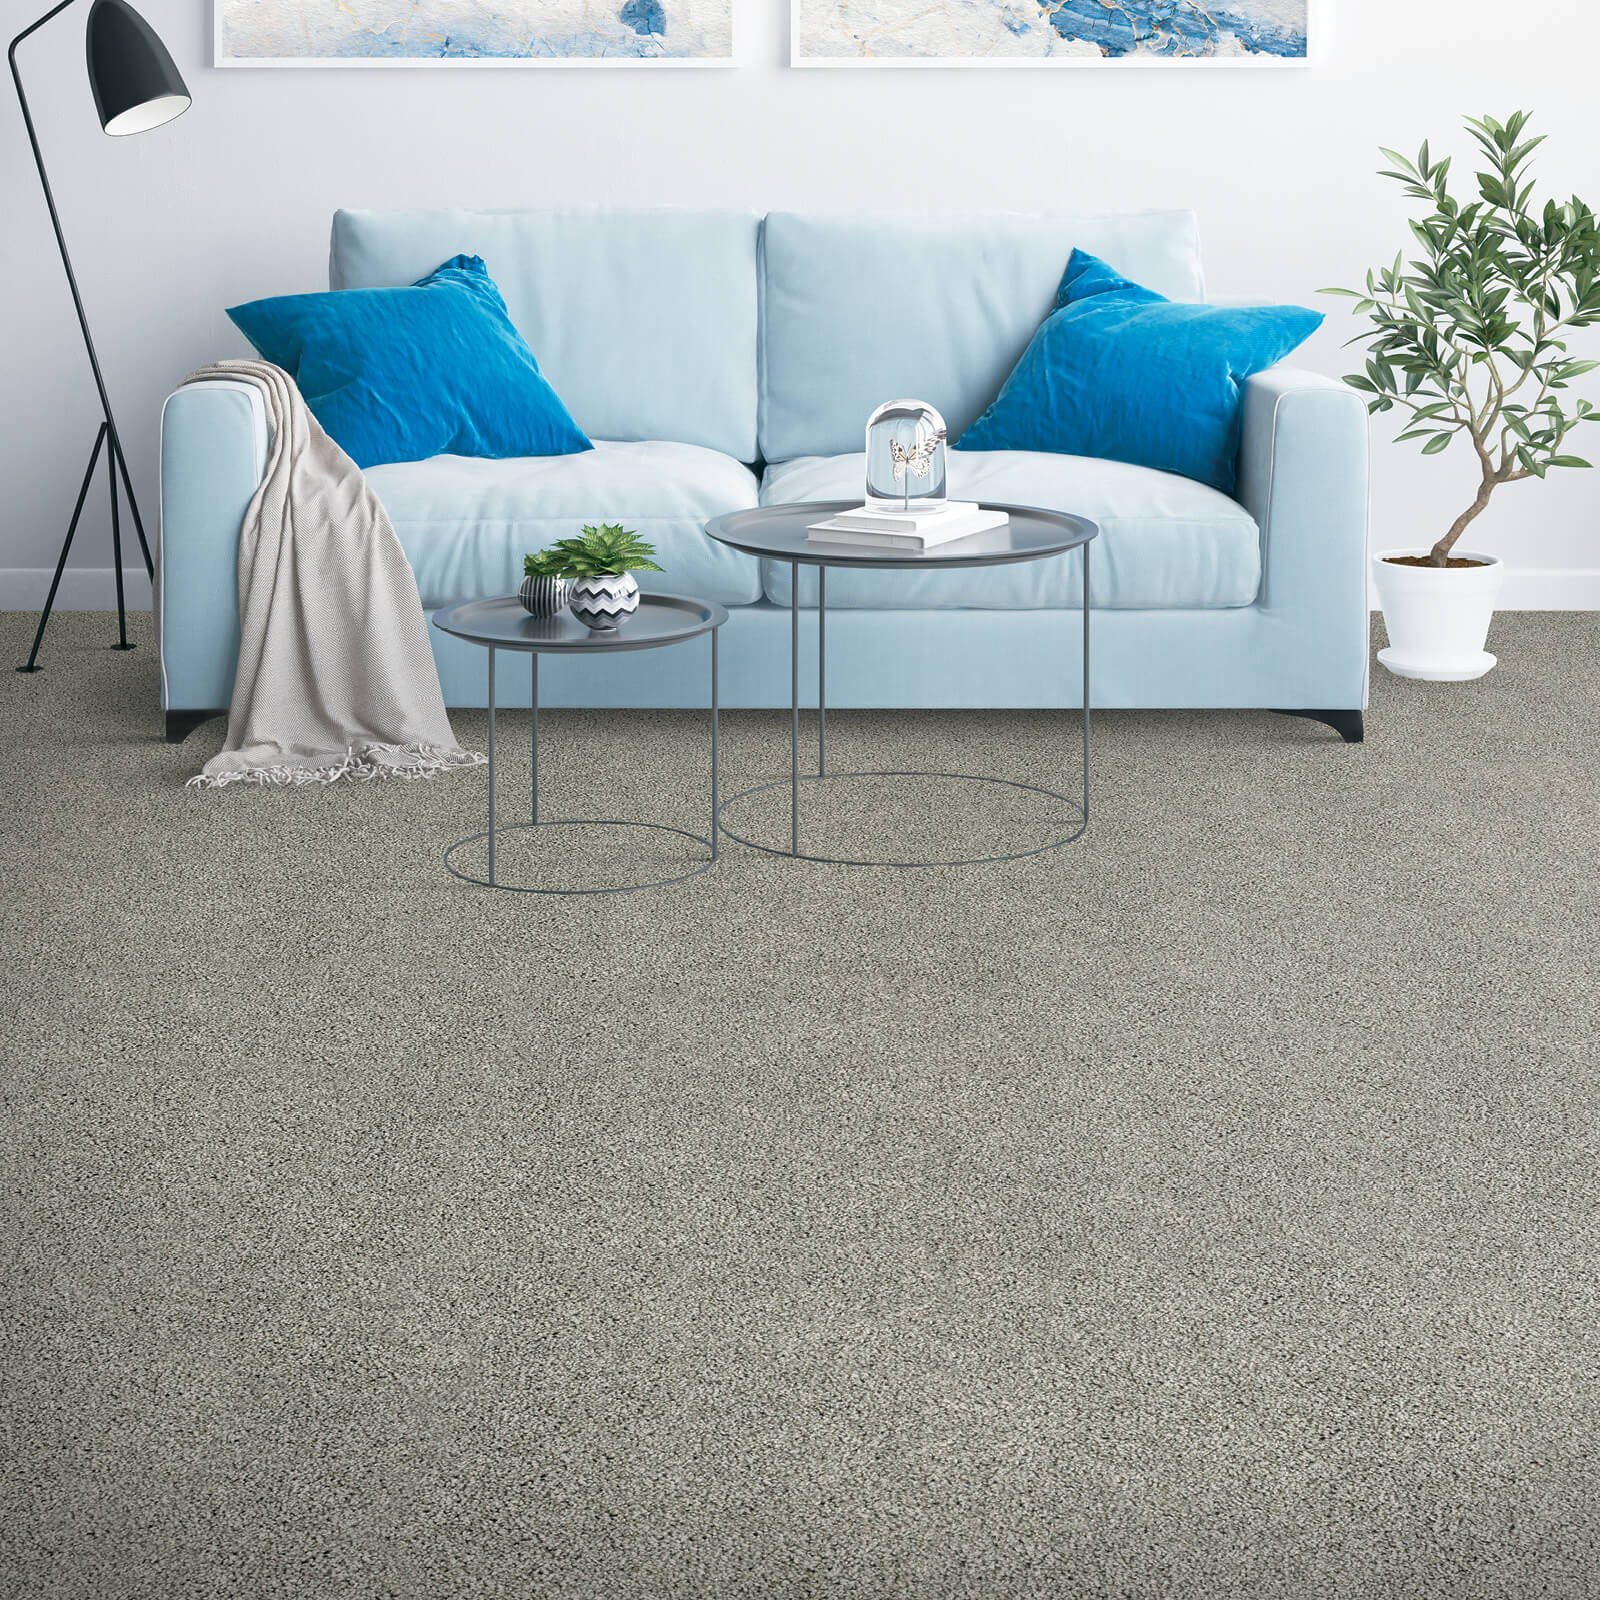 Couch on grey Carpet | Floorida Floors